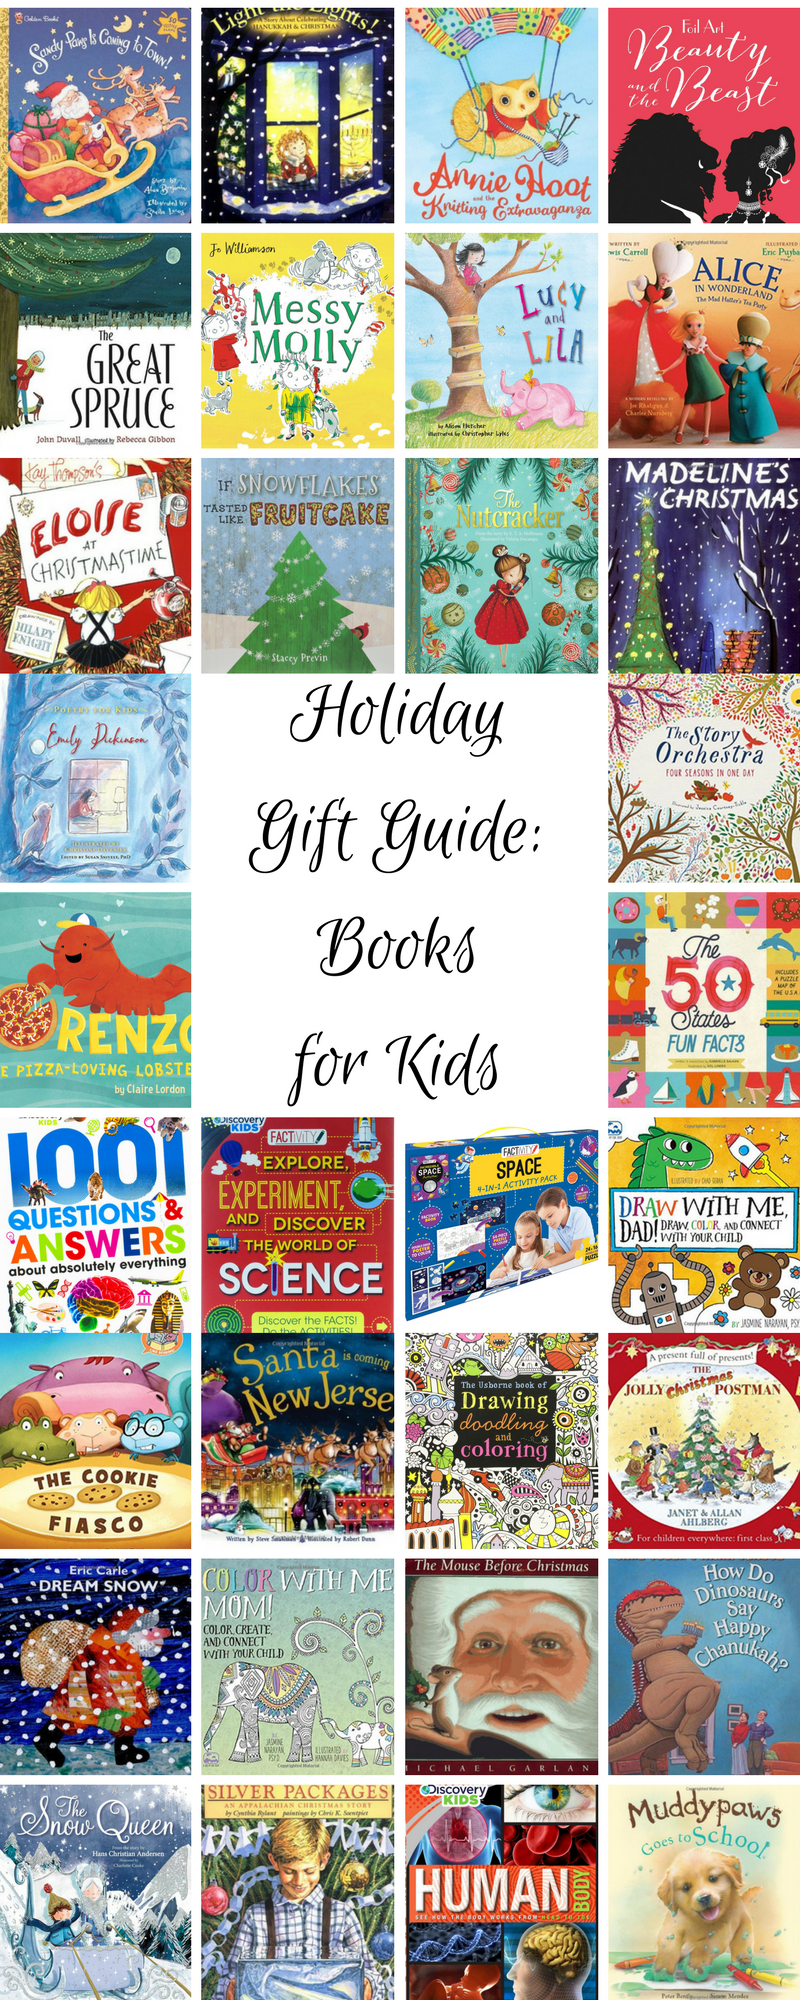 Holiday Gift Guide: Books for Kids